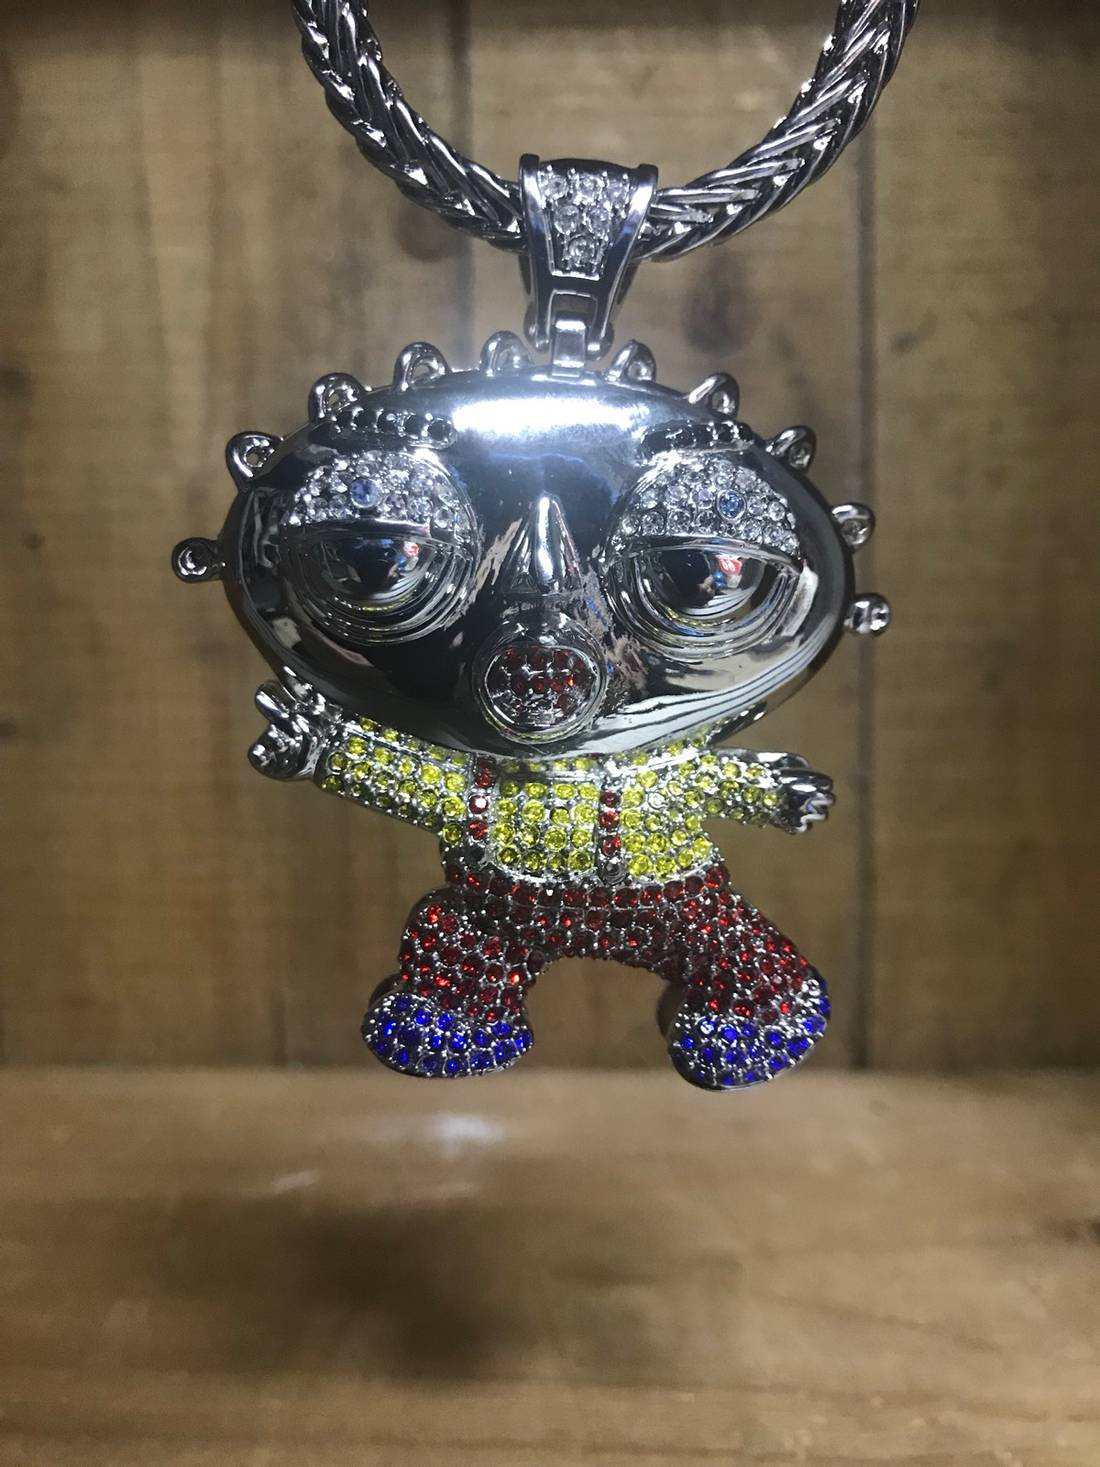 Other stewie xl rapper pendant silver wfree chain size one size other stewie xl rapper pendant silver wfree chain size one size aloadofball Choice Image